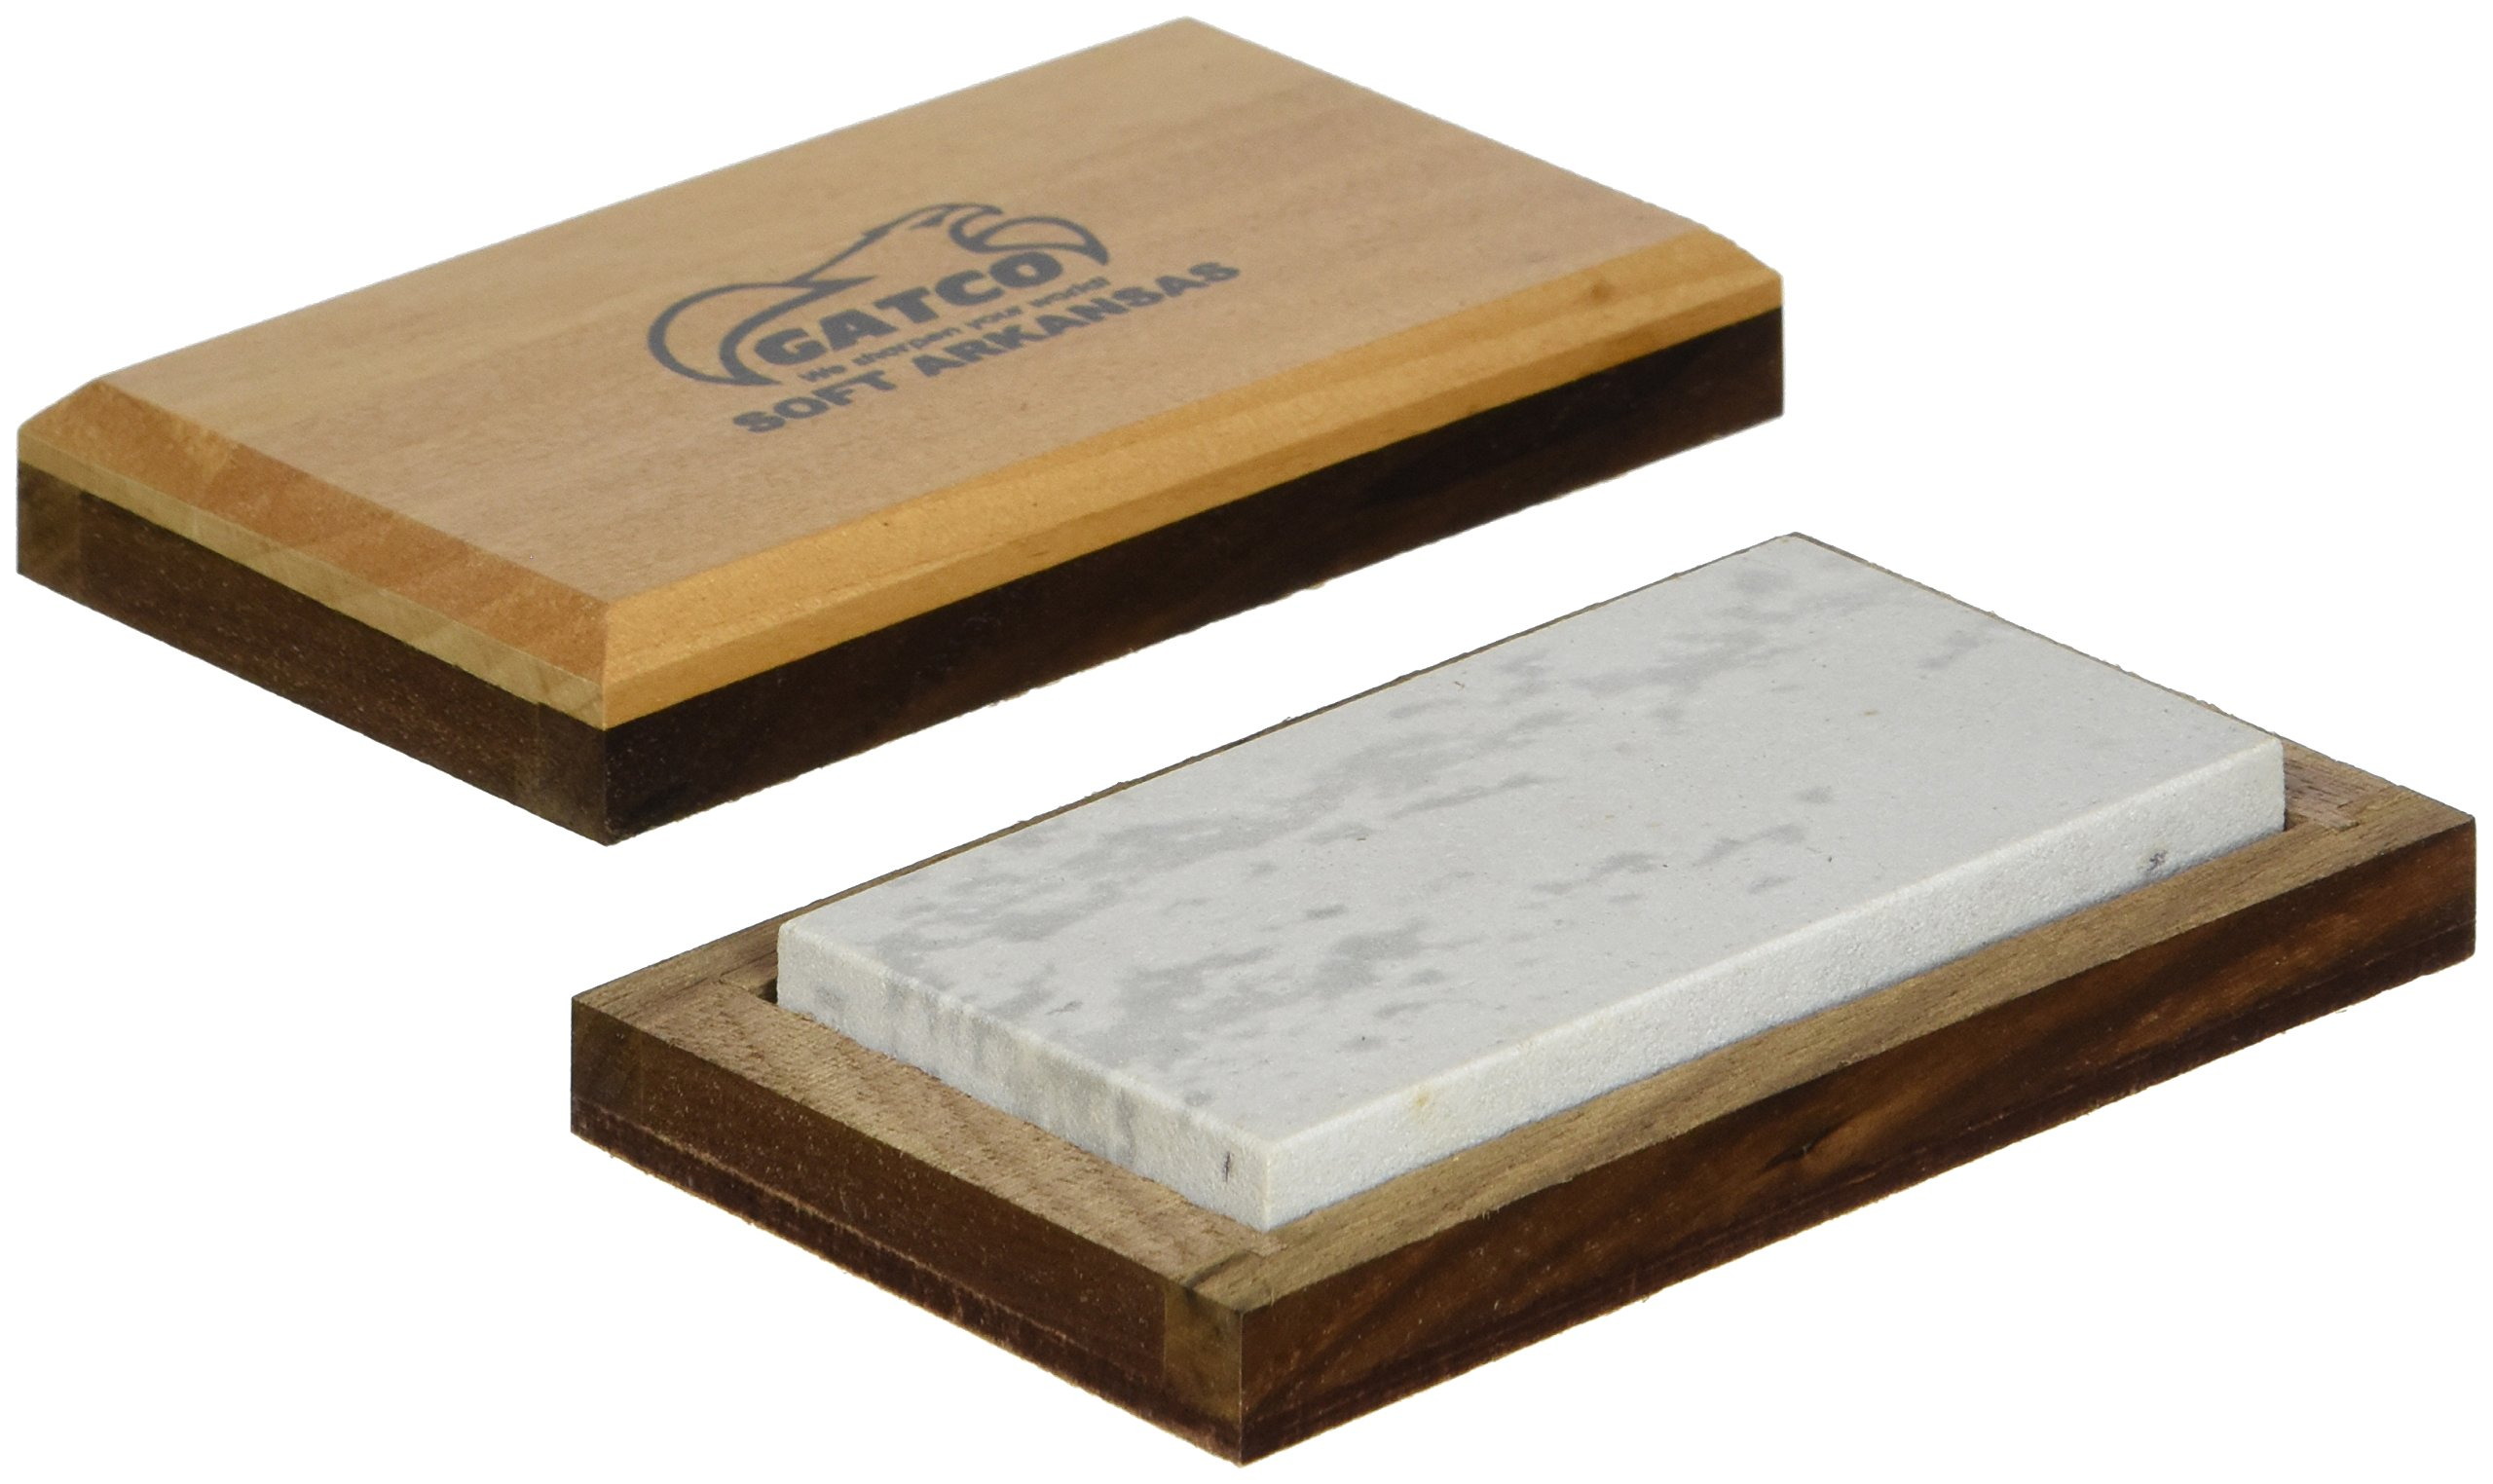 GATCO Soft Arkansas Stone with Case, Natural Stone, 4-Inch